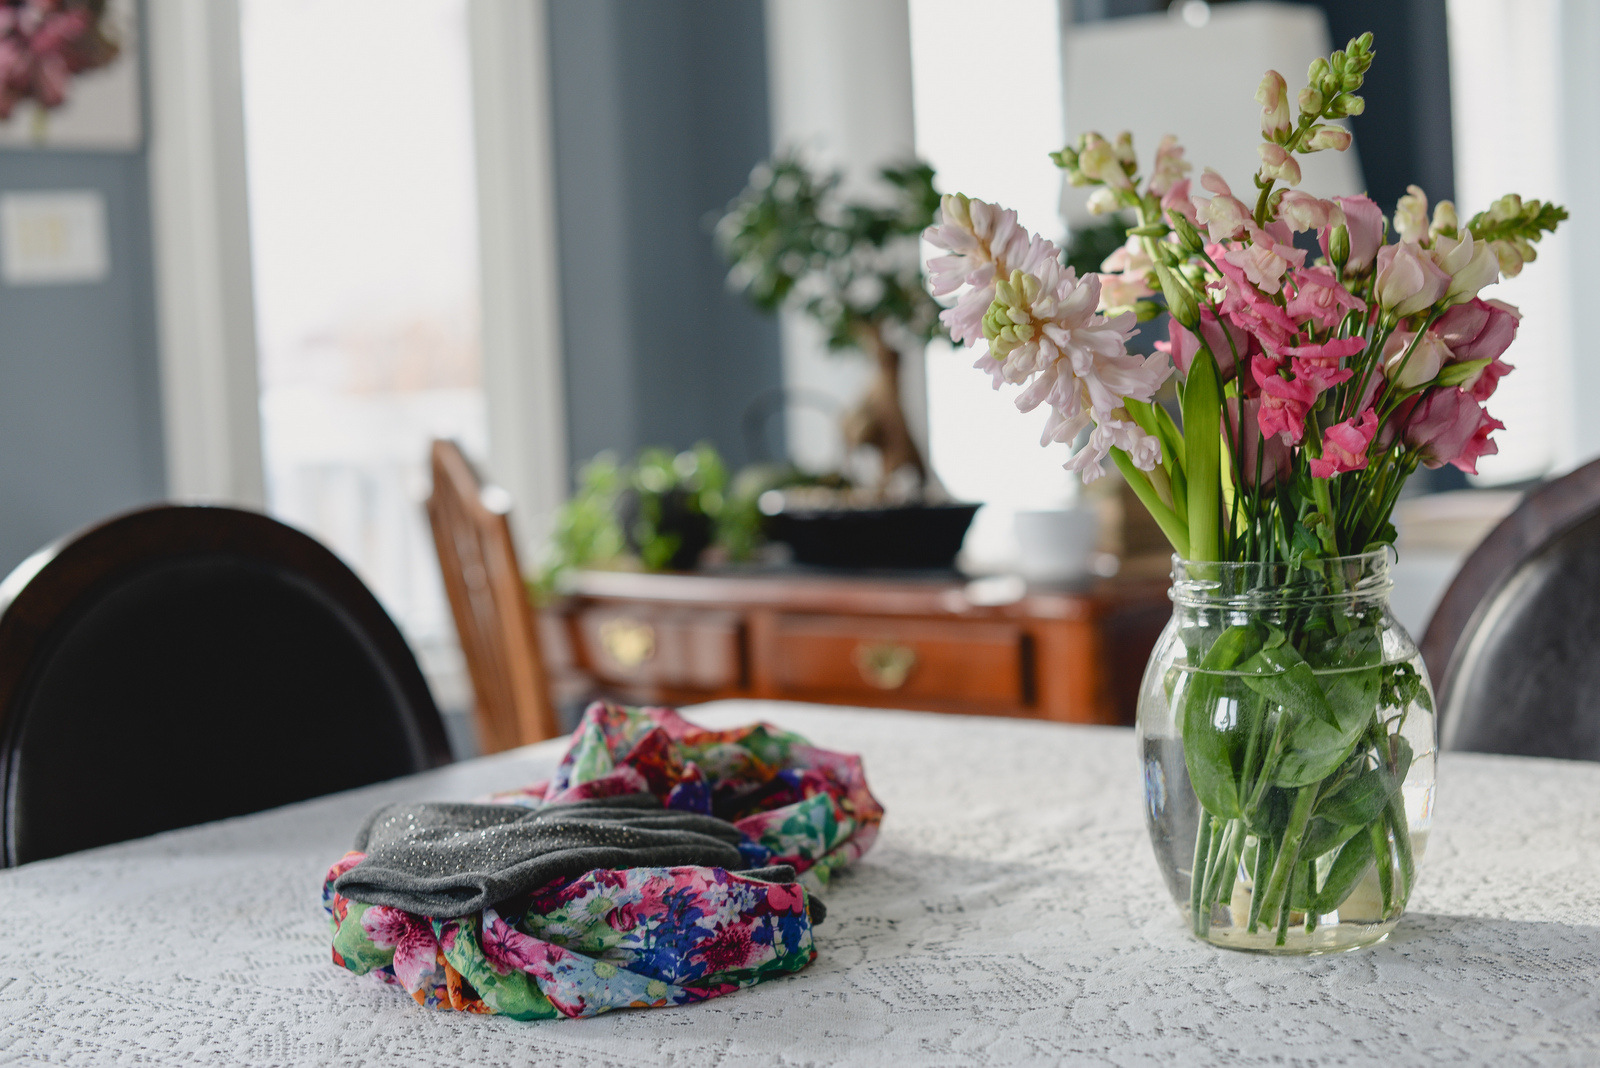 kitchen table with flowers, scarf and gloves